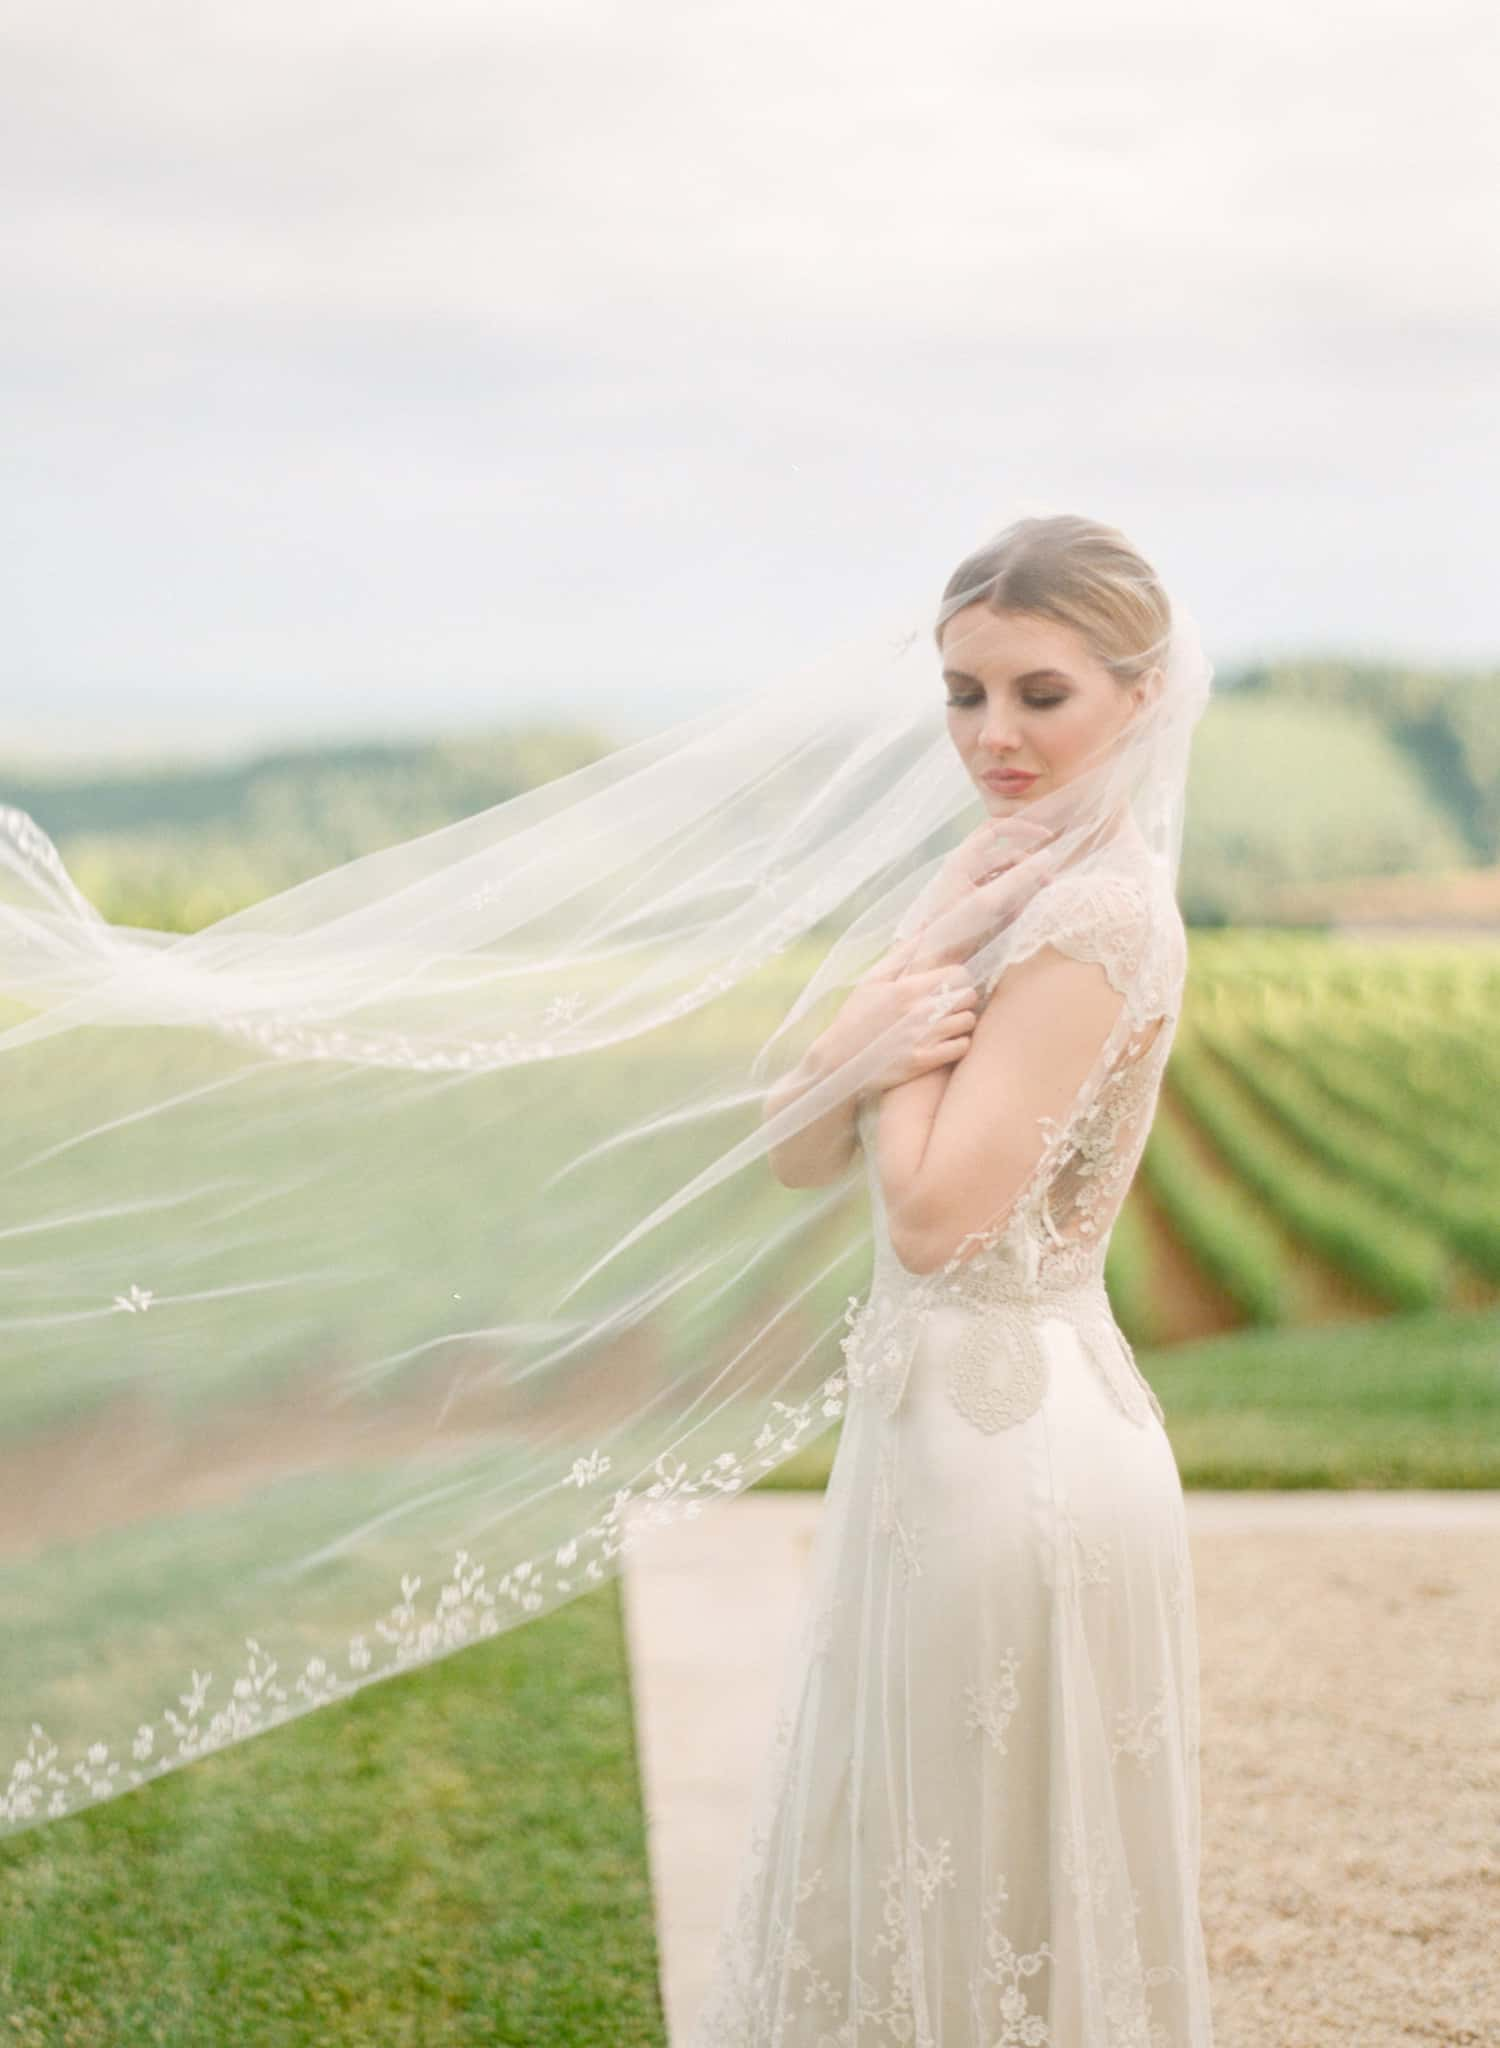 Bridal portrait with delicate veil